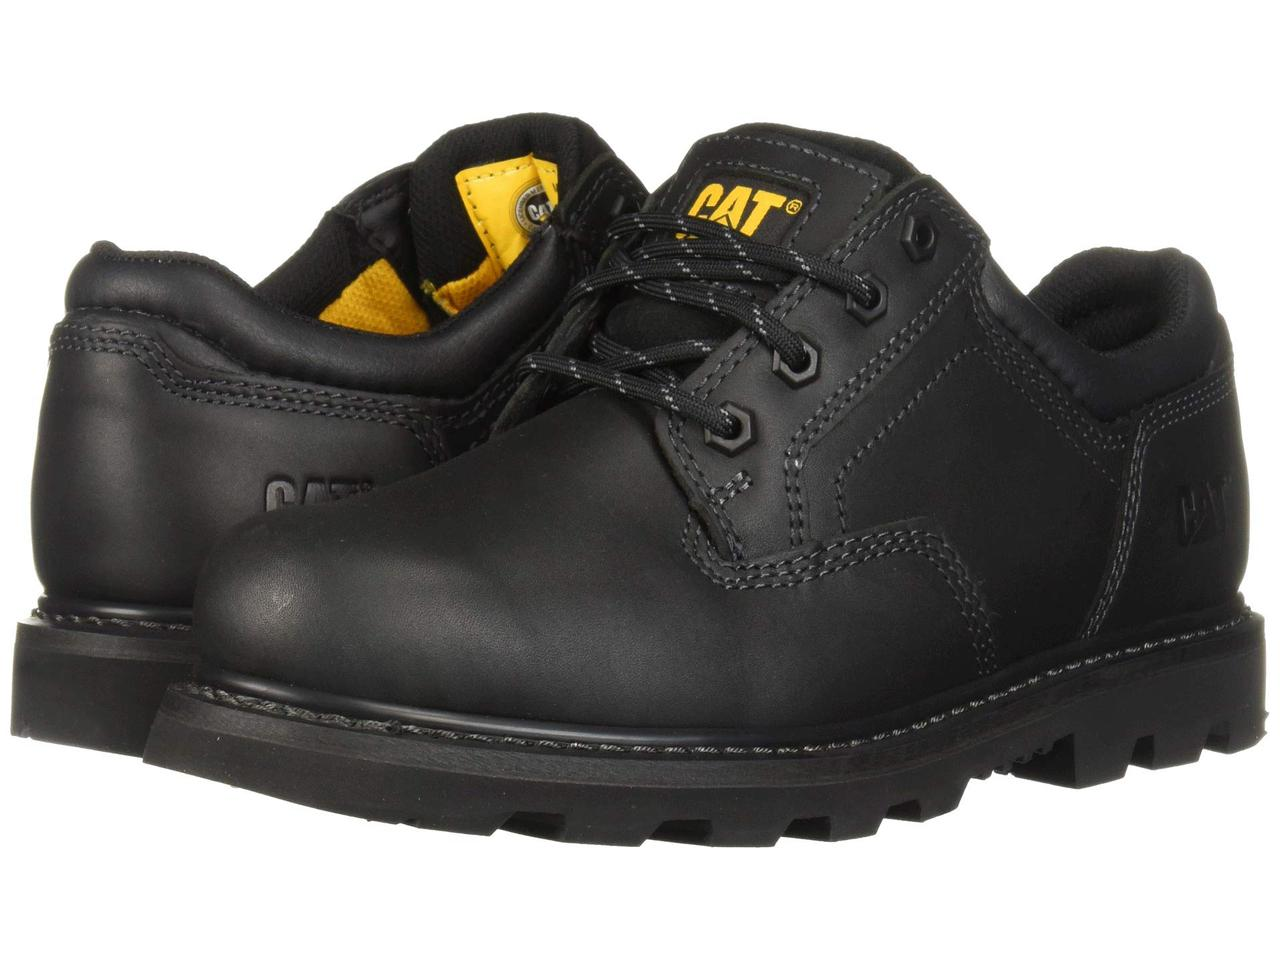 527bc44e5 Туфли (Оригинал) Caterpillar Ridgemont 2.0 Black: продажа, цена в ...